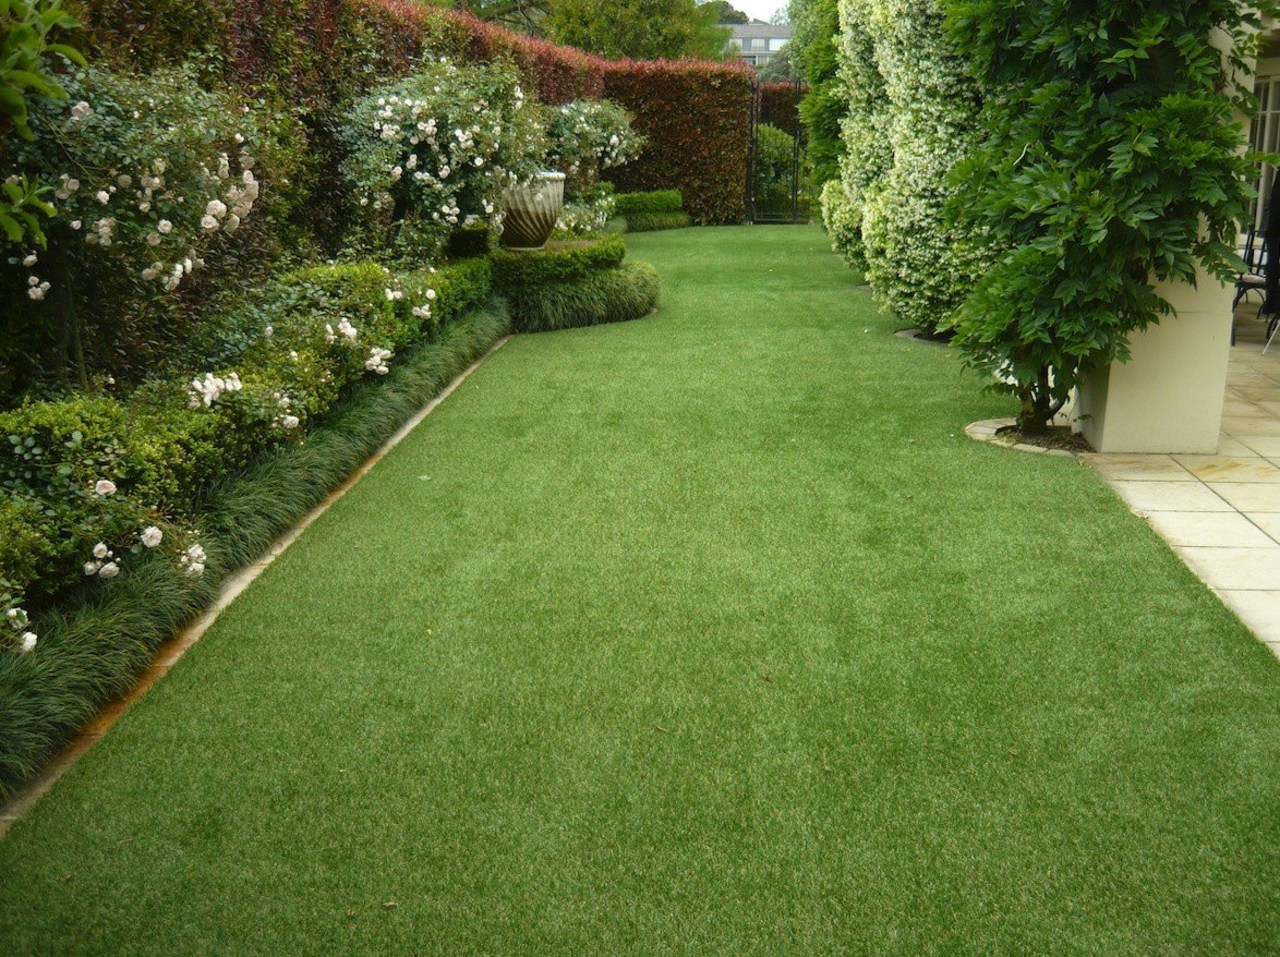 Laying high-quality artificial grasses will ensure your artificial turf, backyard, flooring, garden, grass, grass family, landscape, landscaping, lawn, plant, shrub, walkway, yard, green, brown